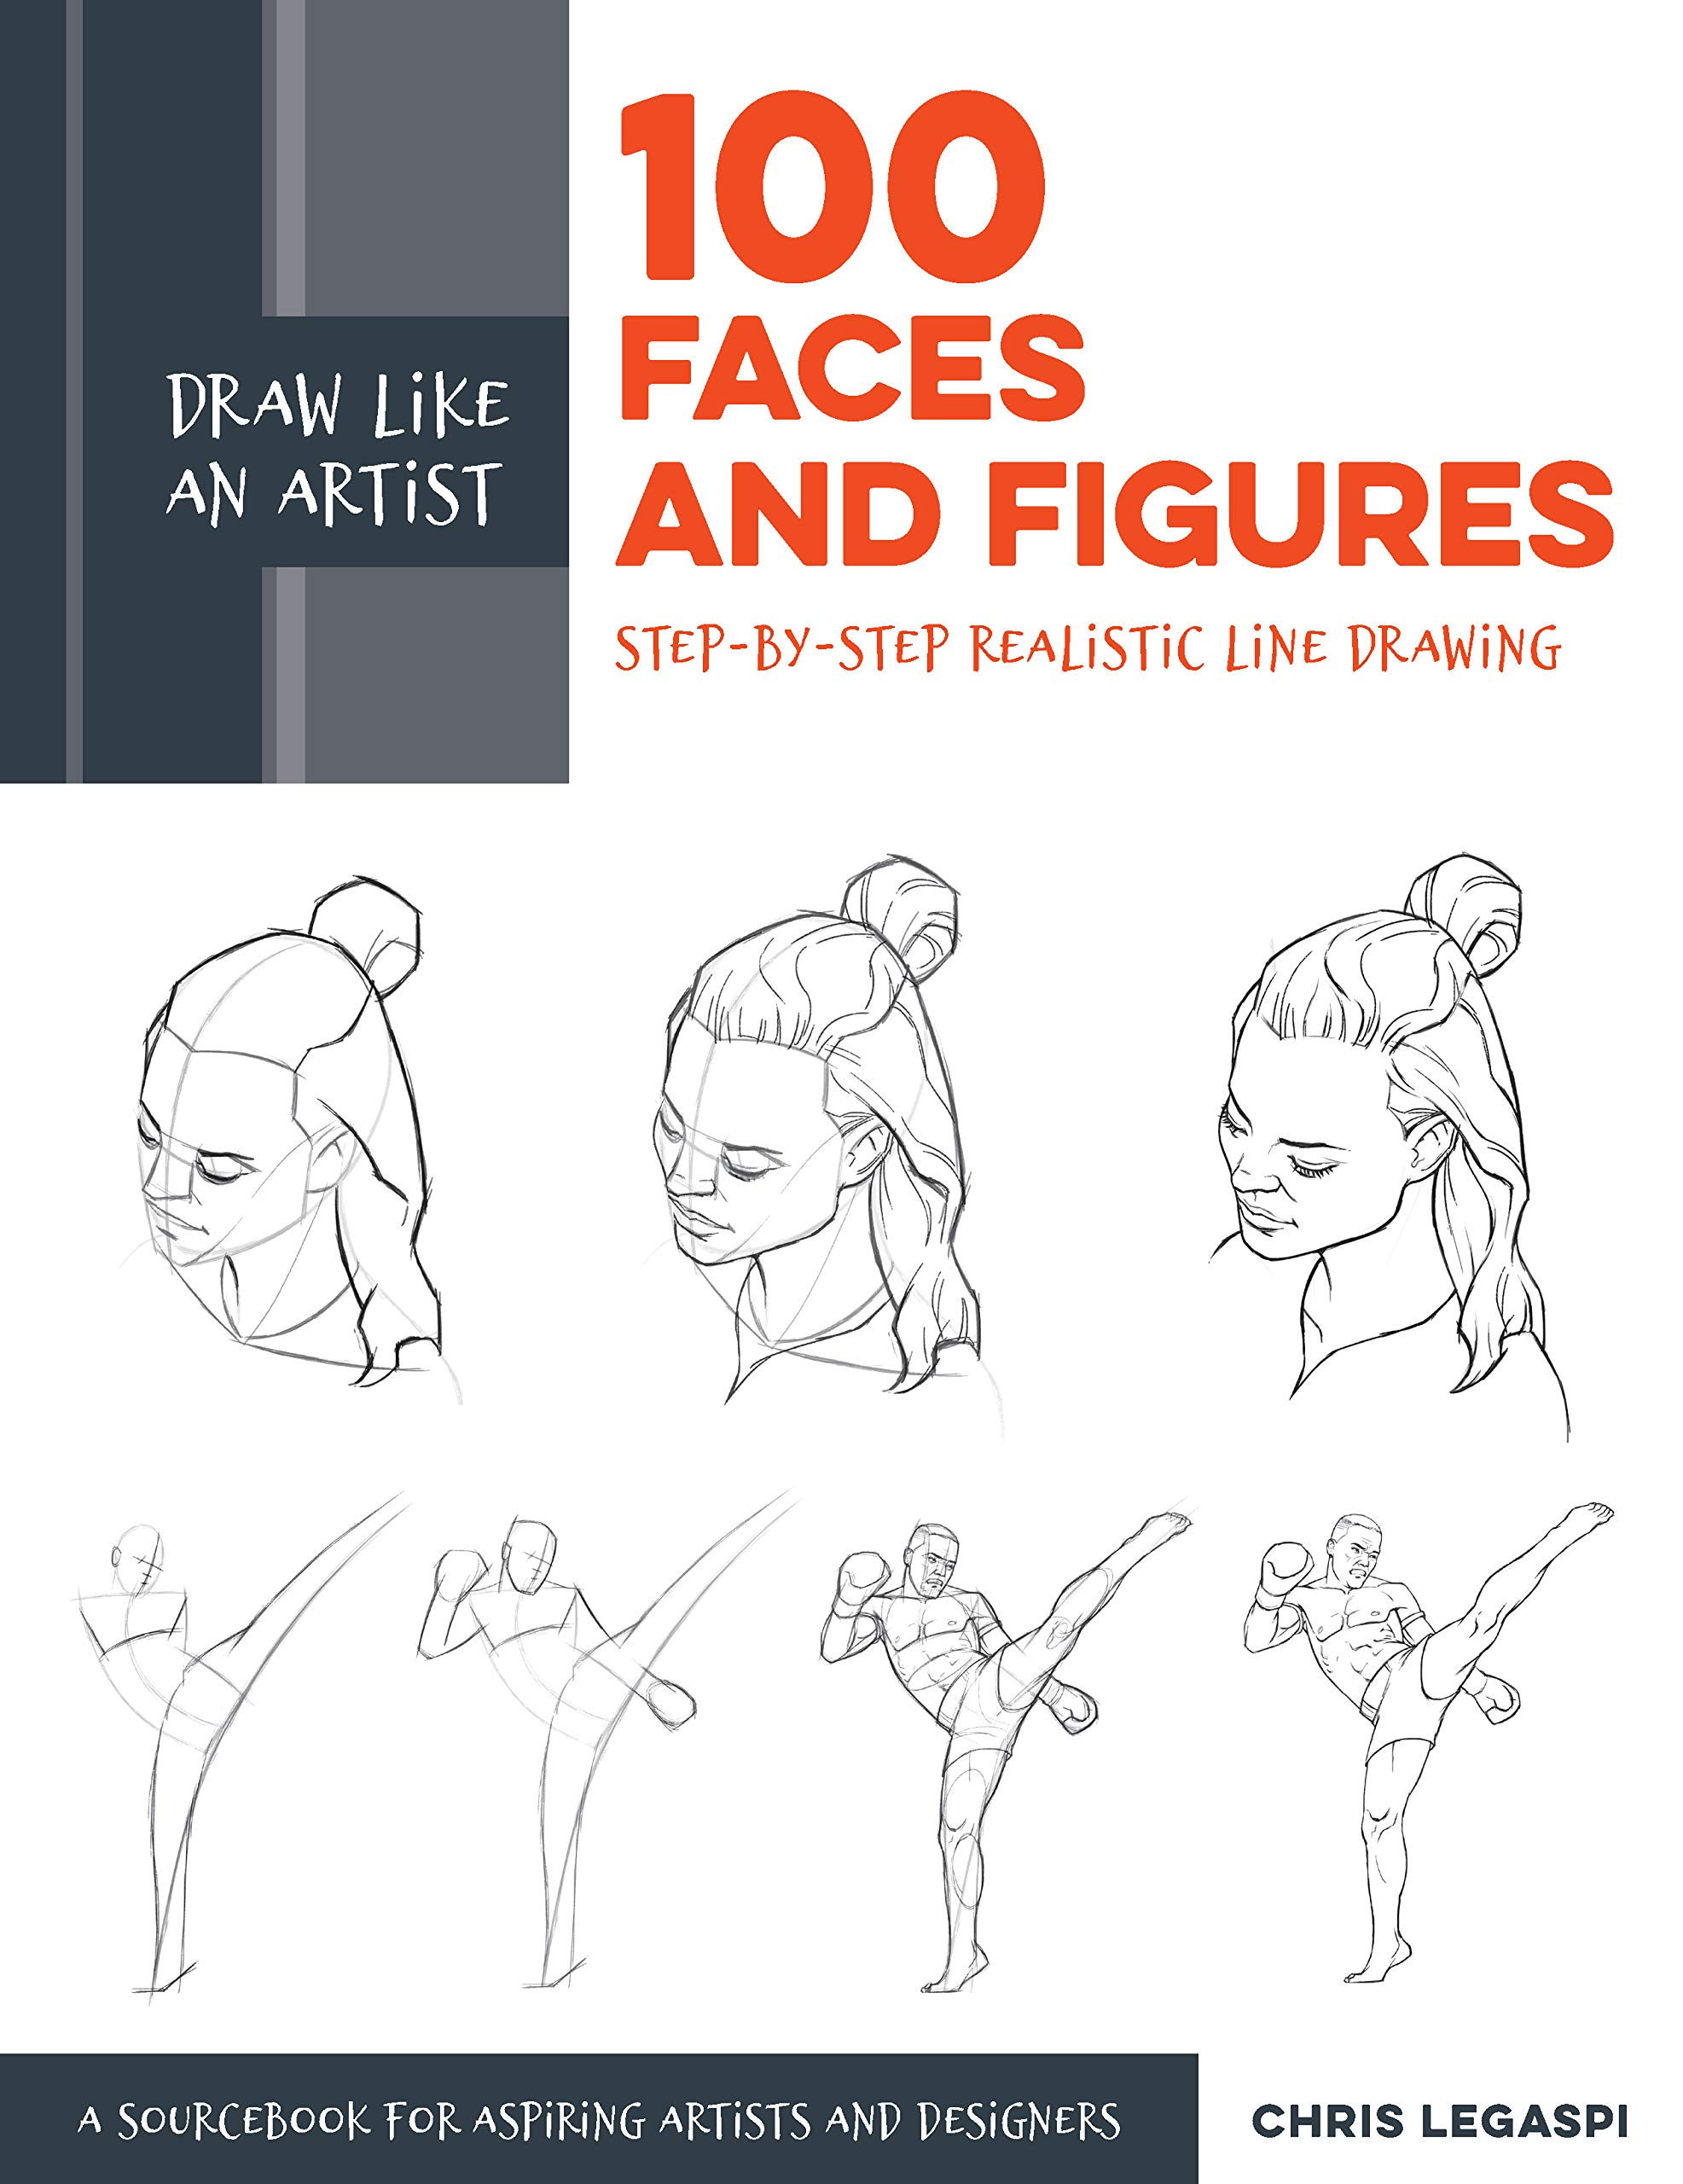 Draw like an artist 100 faces and figures step by step realistic line drawing a sketching guide for aspiring artists and designers paperback apr 16